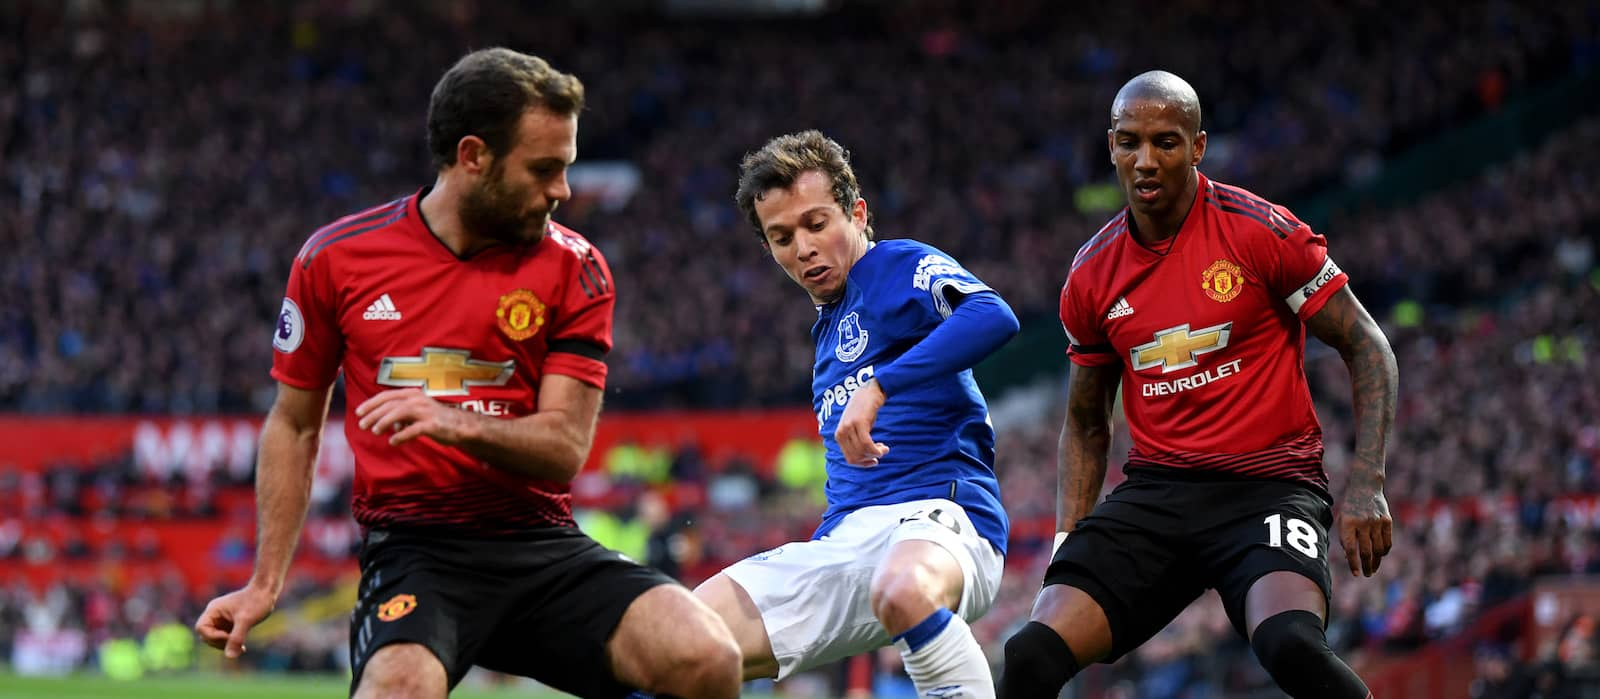 Photo gallery: Manchester United 2-1 Everton